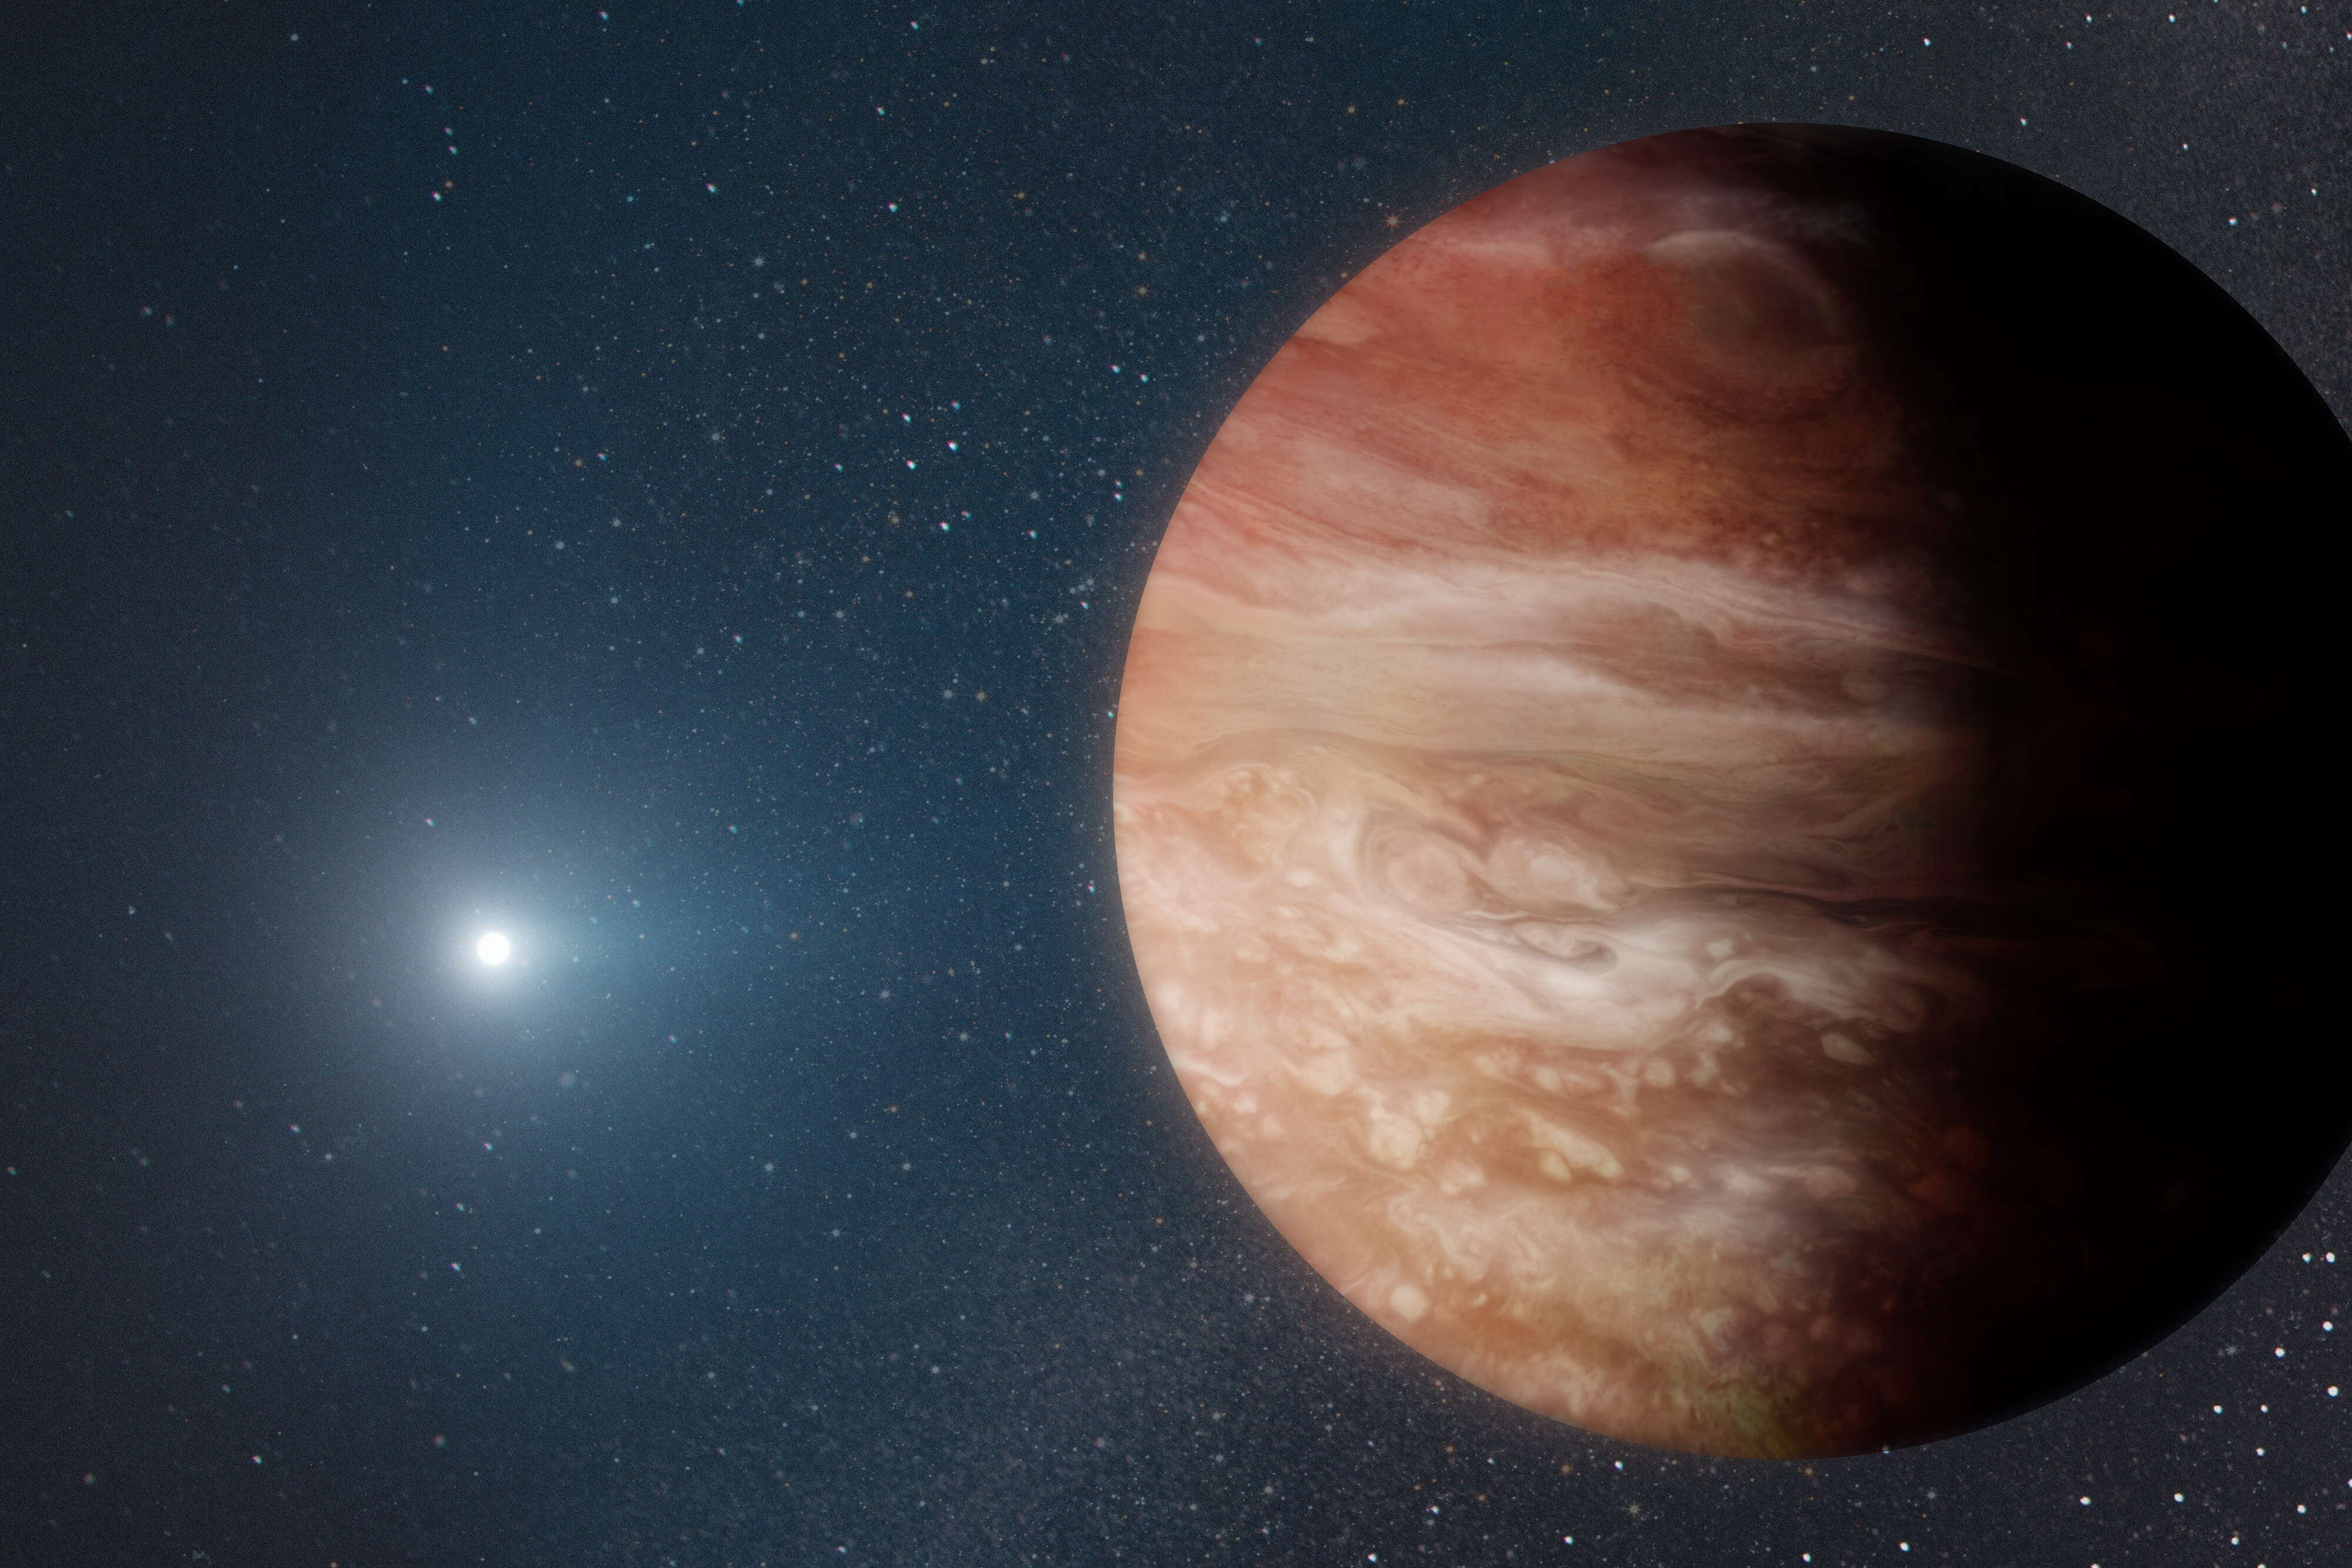 Giant planet found orbiting a dead star shows what may happen when our sun dies